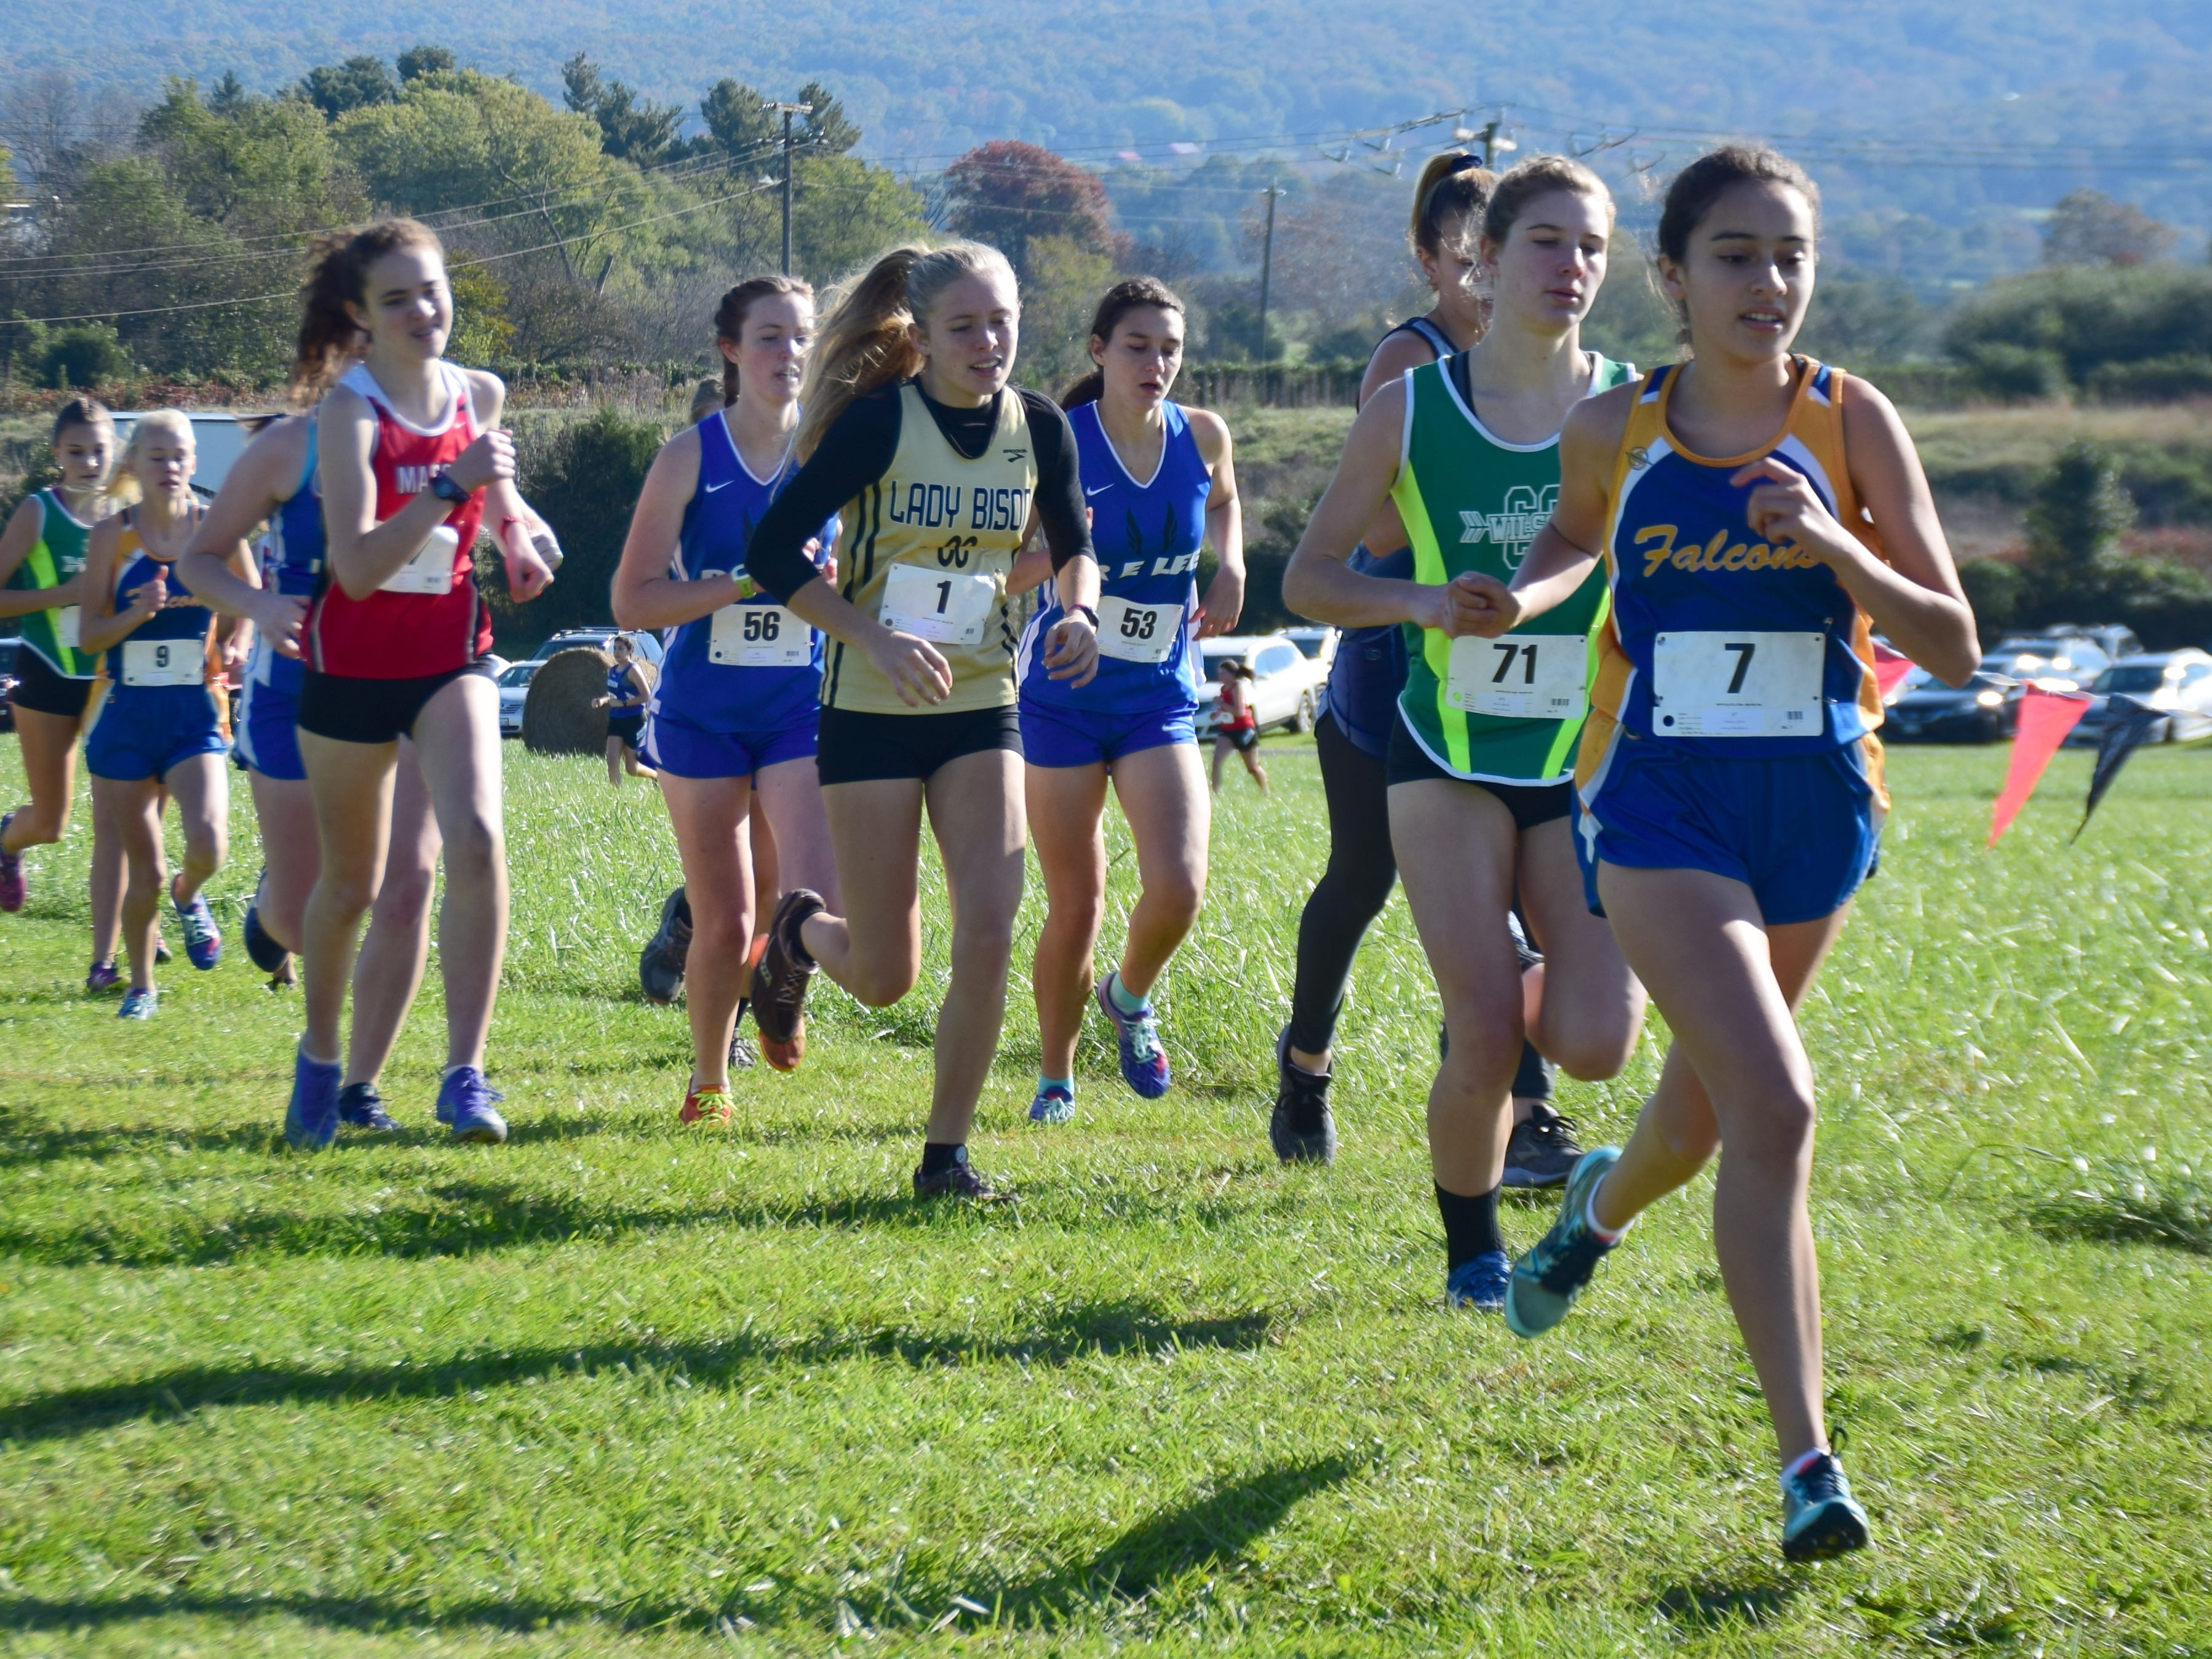 Runners compete in the girls race at the VHSL Class 2, Region B Cross Country Championships on Tuesday, Oct. 30, 2018, at New Market Battlefield Park in New Market, Va.